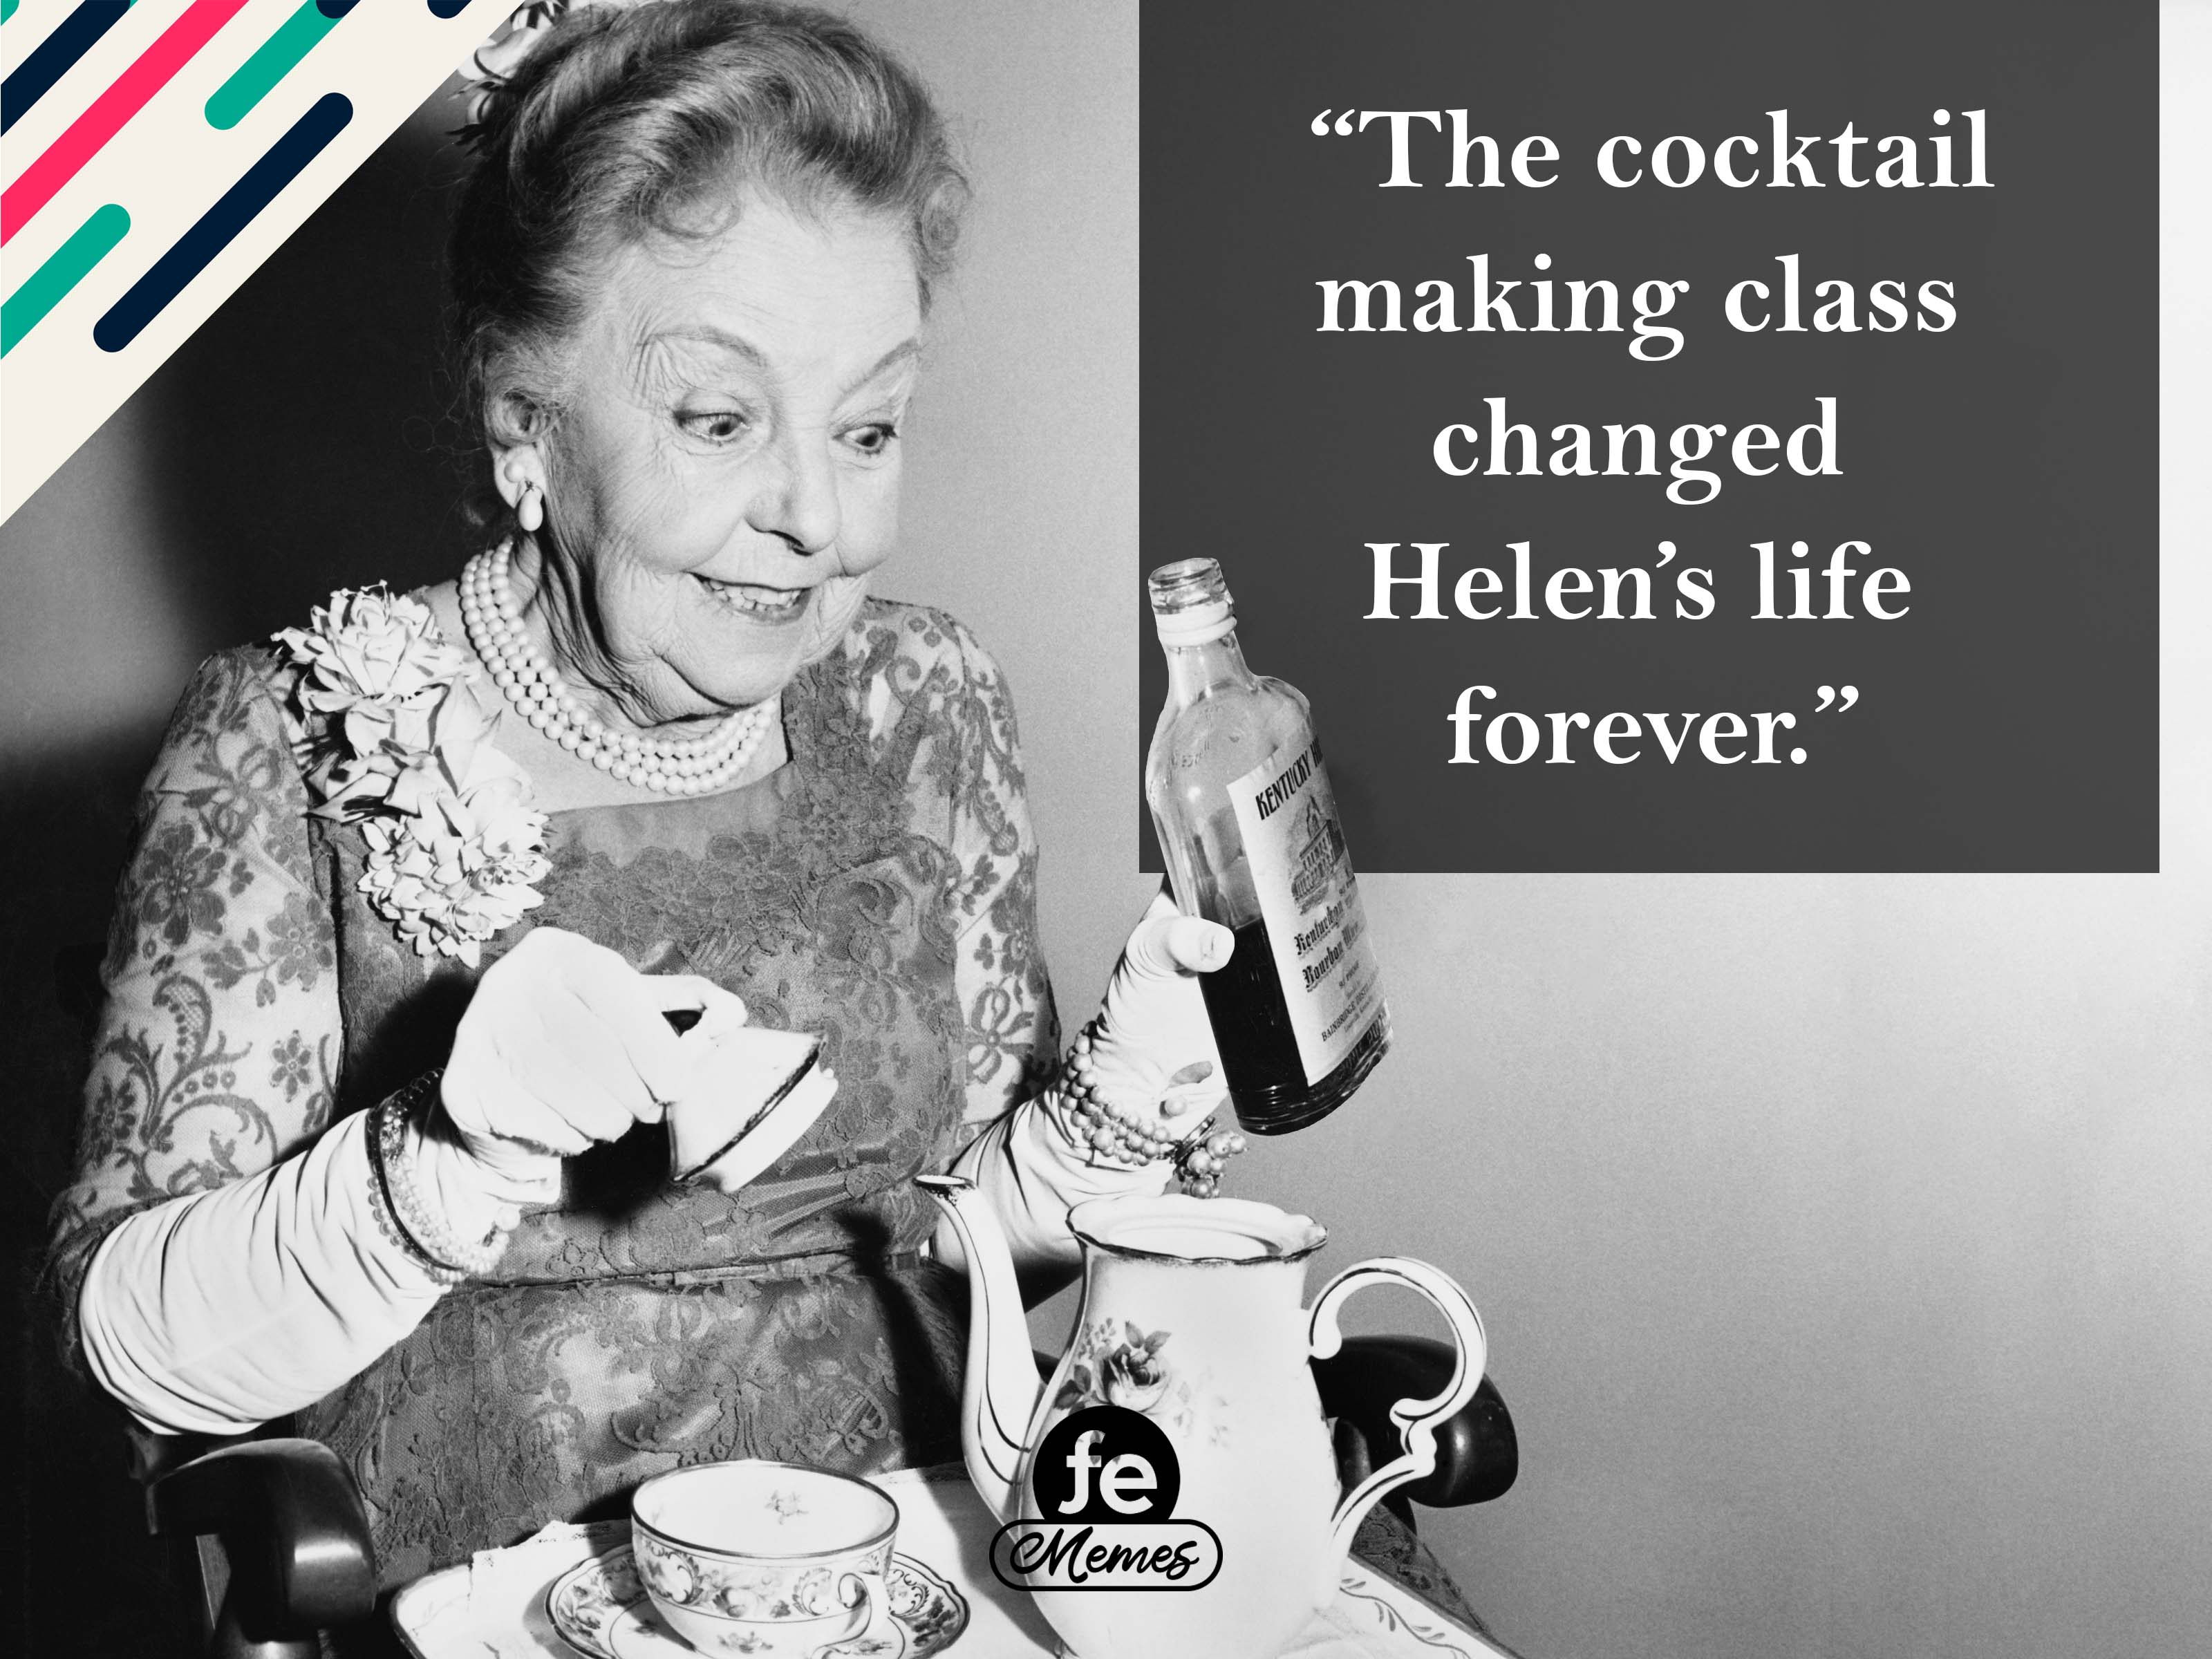 The cocktail making class changed Helen's life forever - Meme 6